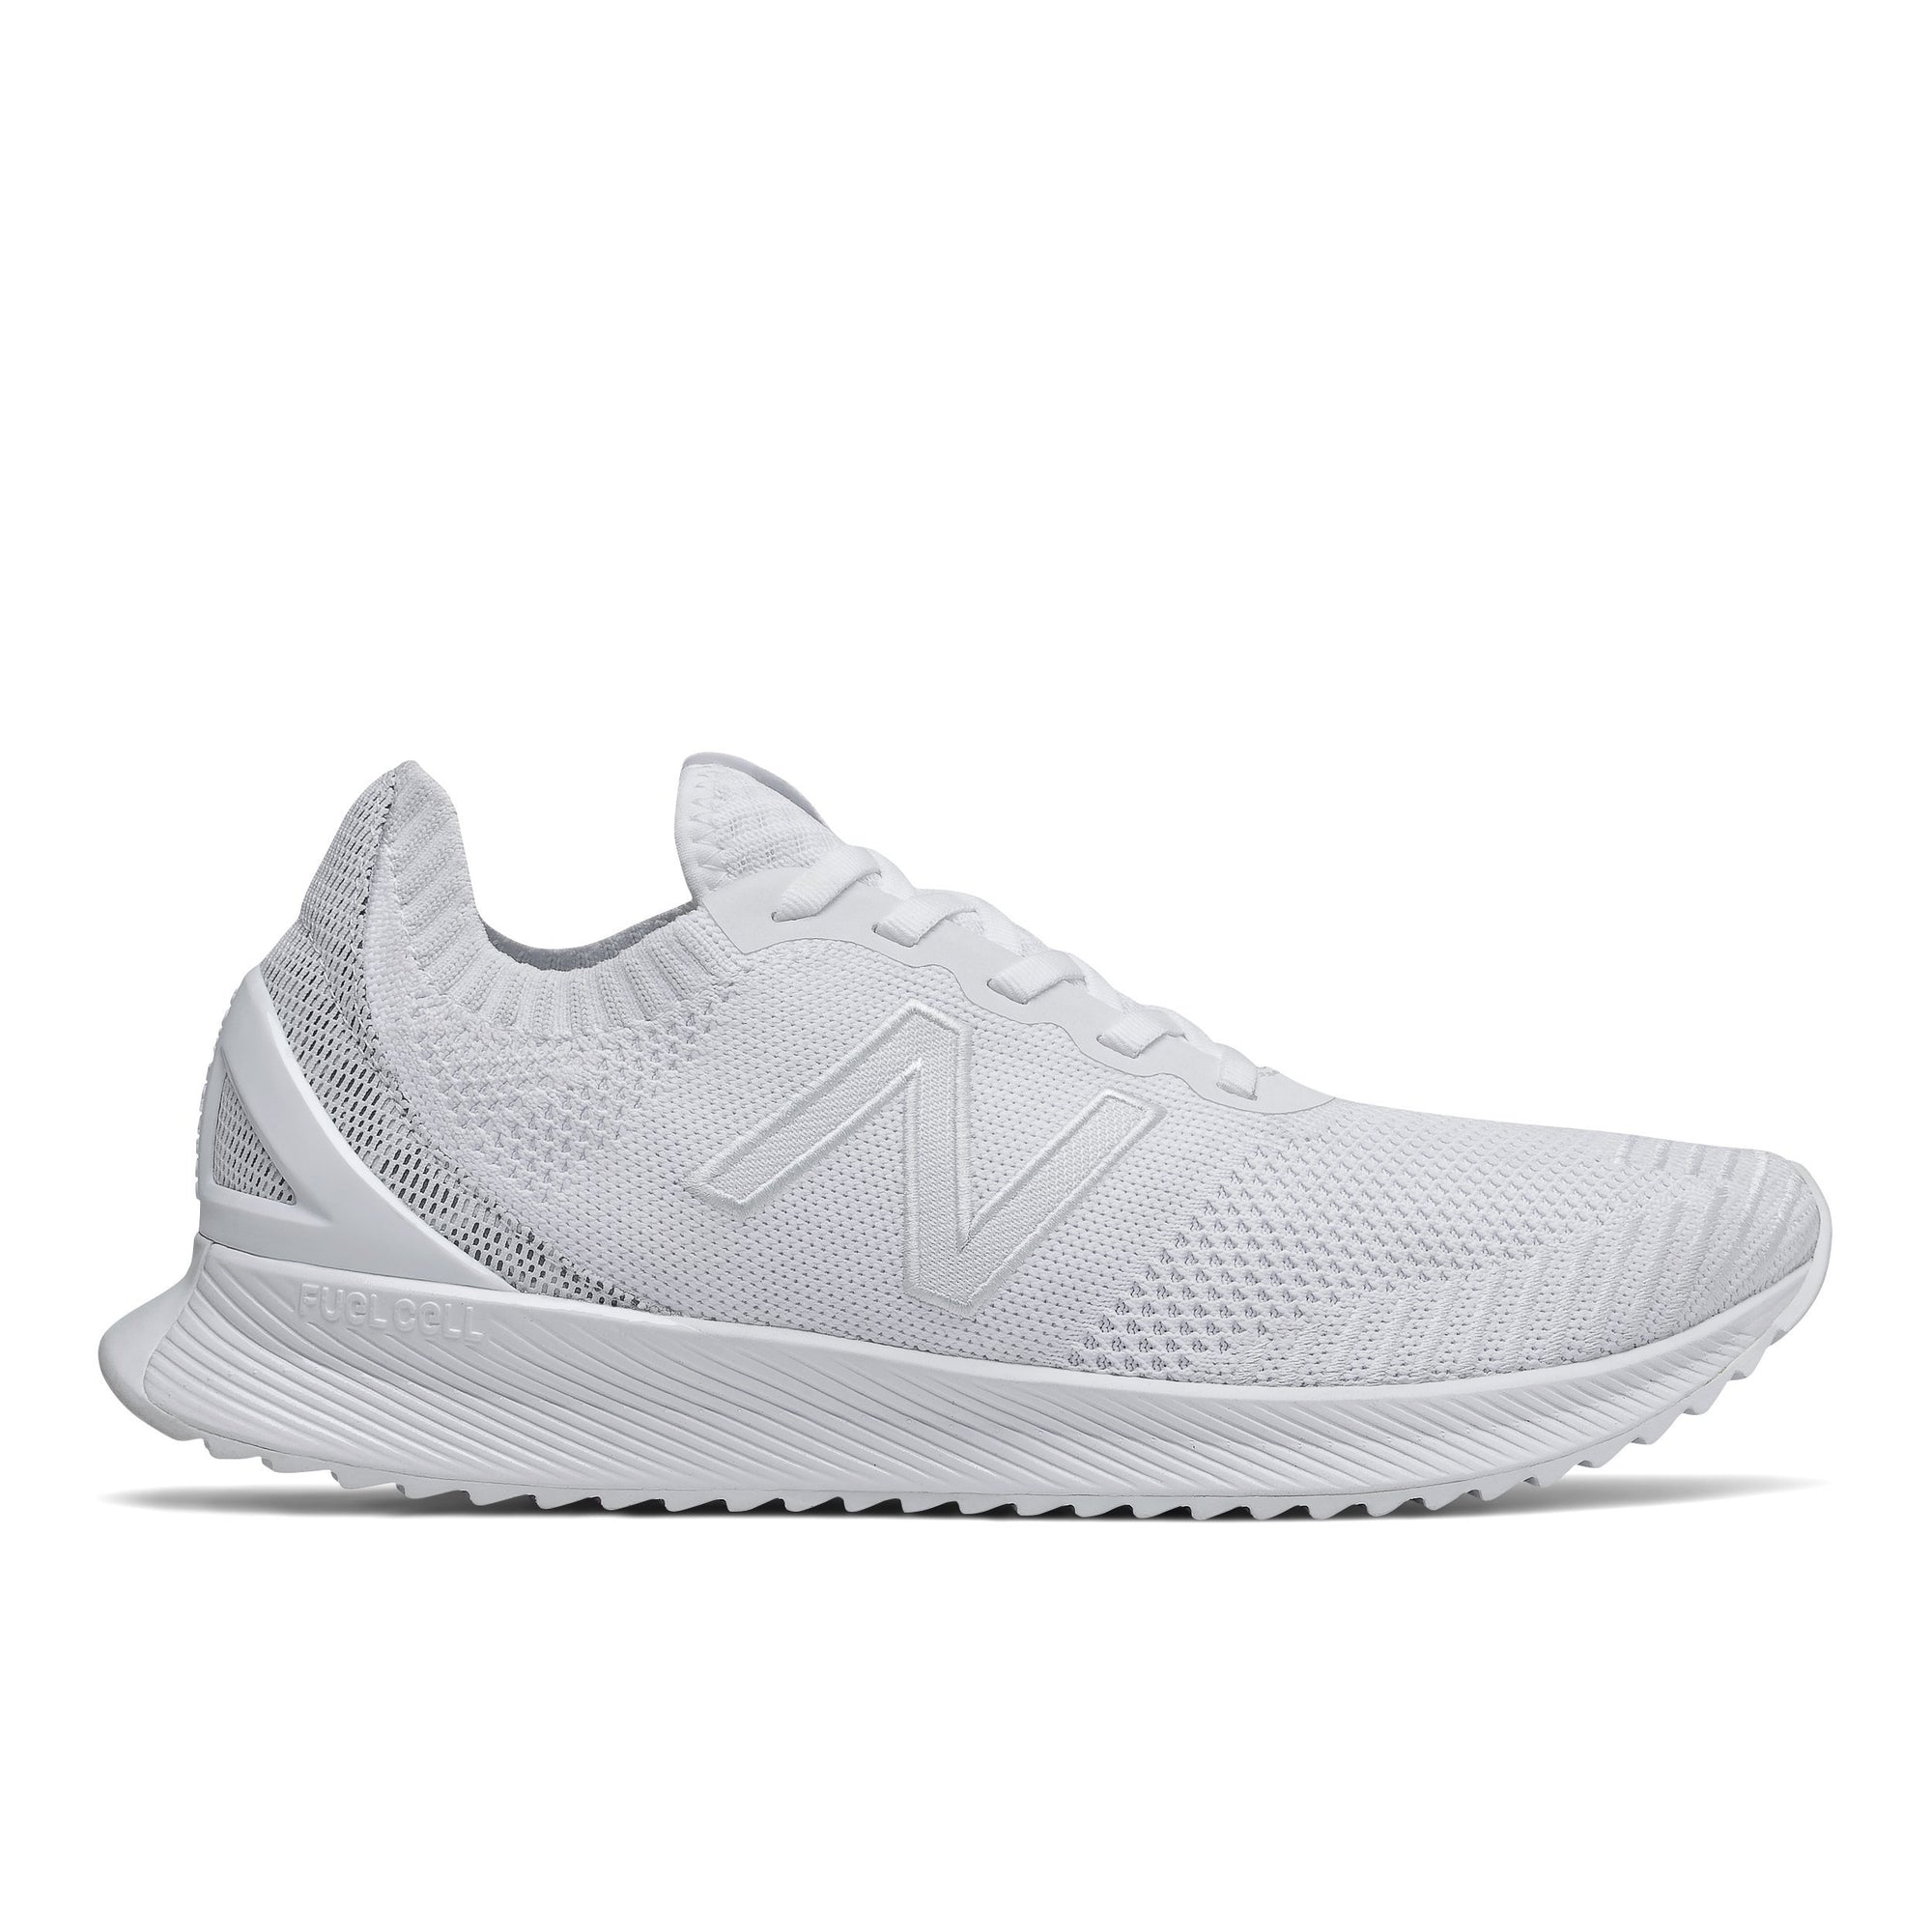 New Balance Mens FuelCell Echo - Triple White SP-Footwear-Mens New Balance